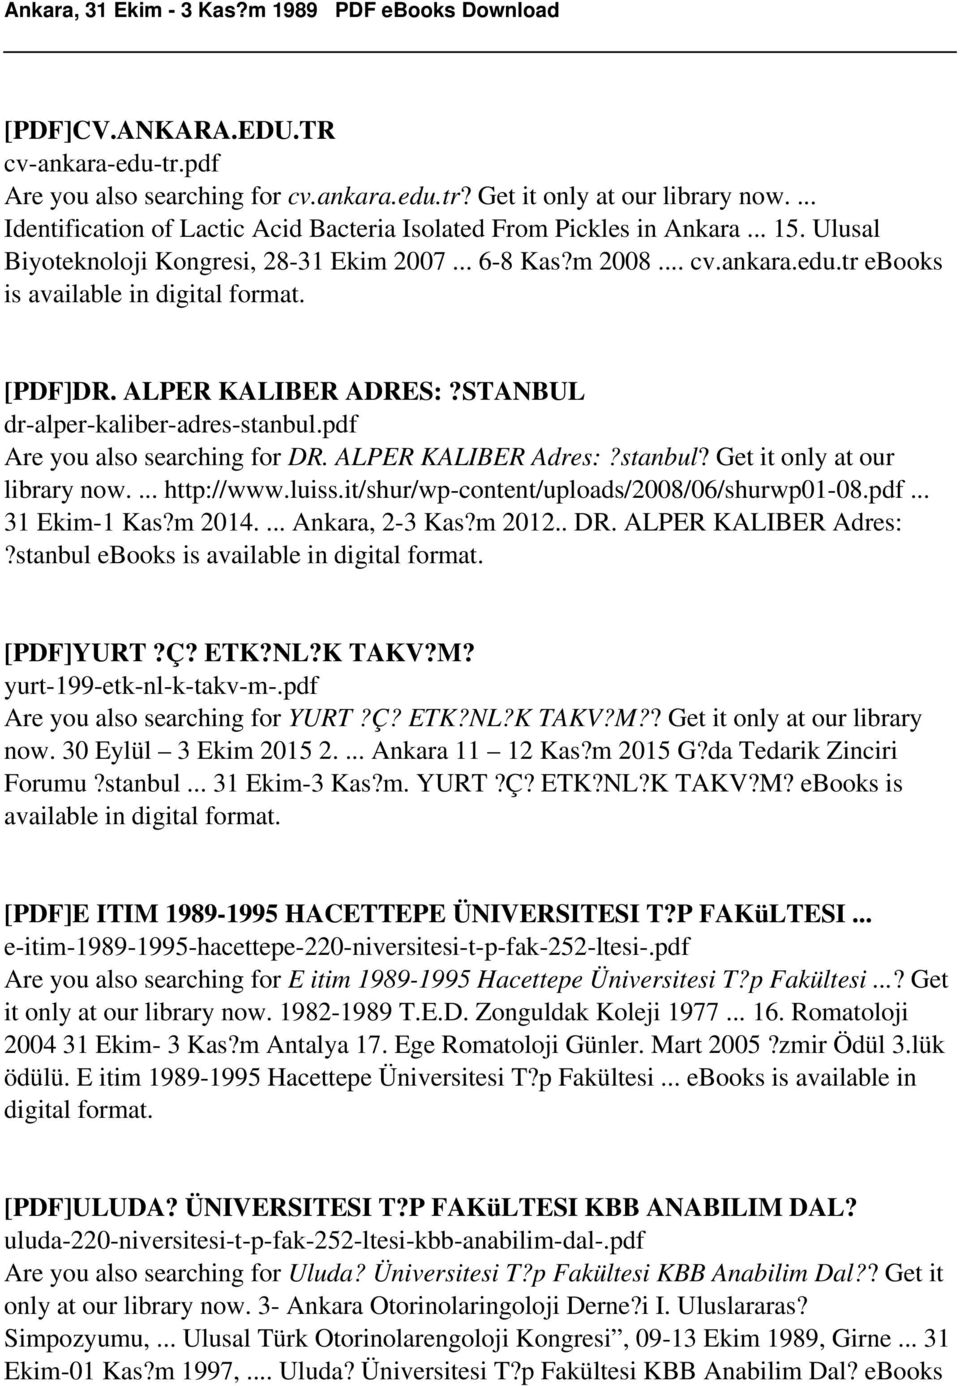 ALPER KALIBER Adres:?stanbul? Get it only at our library now.... http://www.luiss.it/shur/wp-content/uploads/2008/06/shurwp01-08.pdf... 31 Ekim-1 Kas?m 2014.... Ankara, 2-3 Kas?m 2012.. DR.